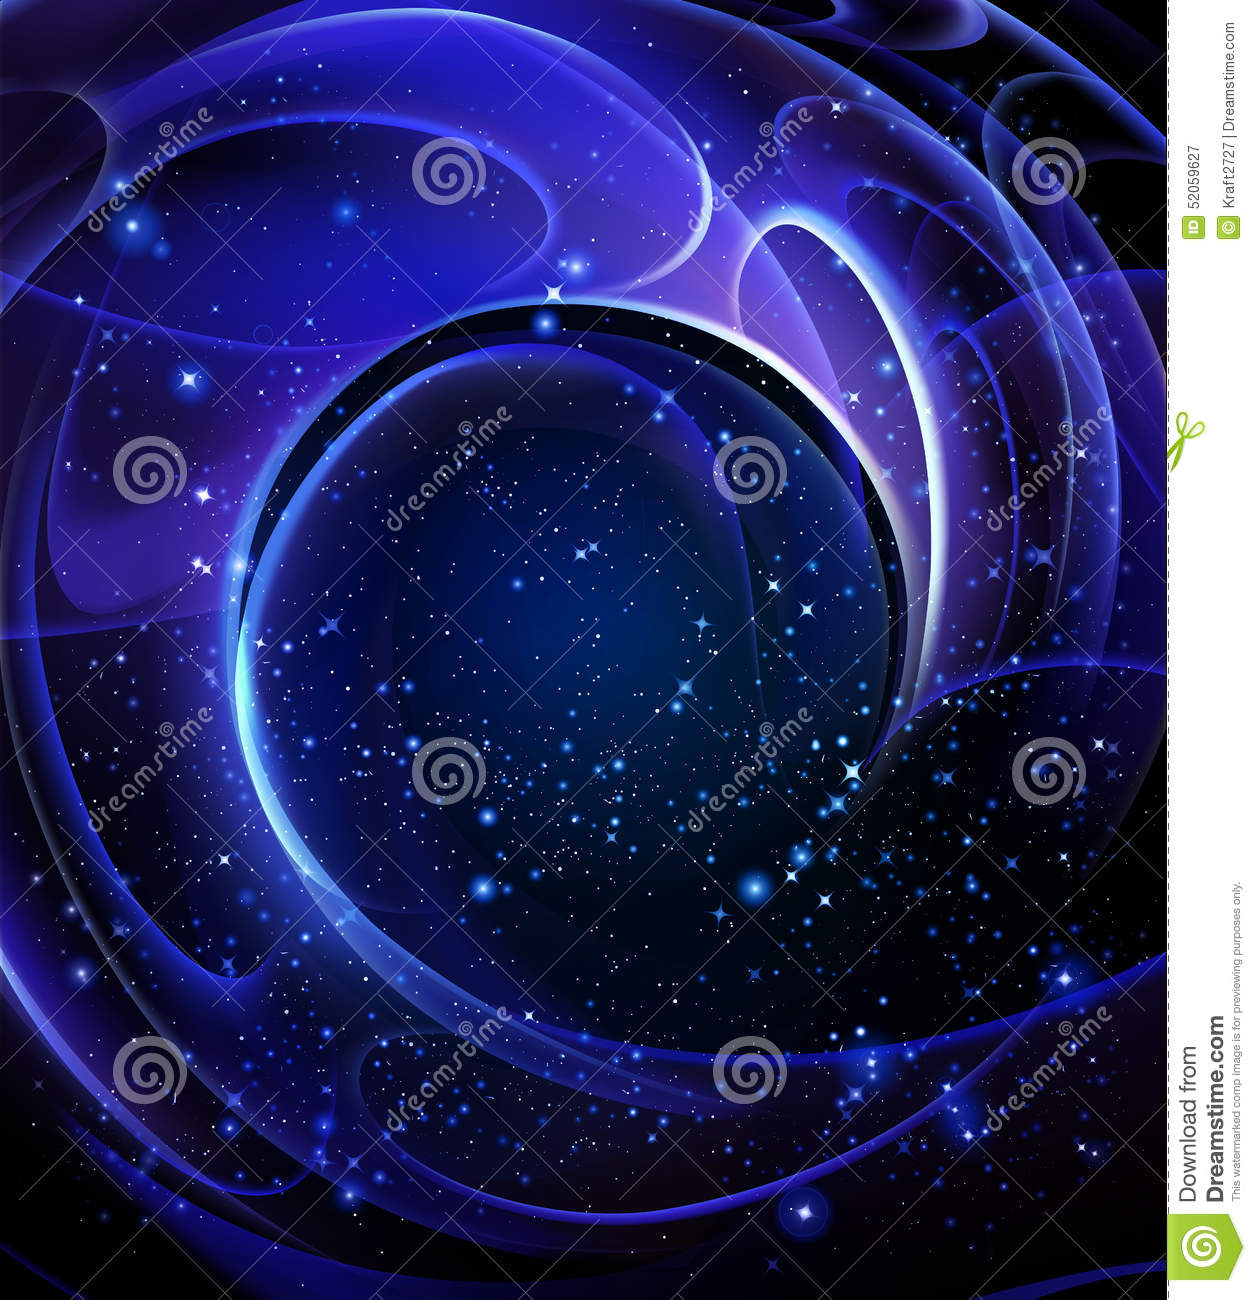 Shape And Space Artwork : Spiral galaxy stock illustration image